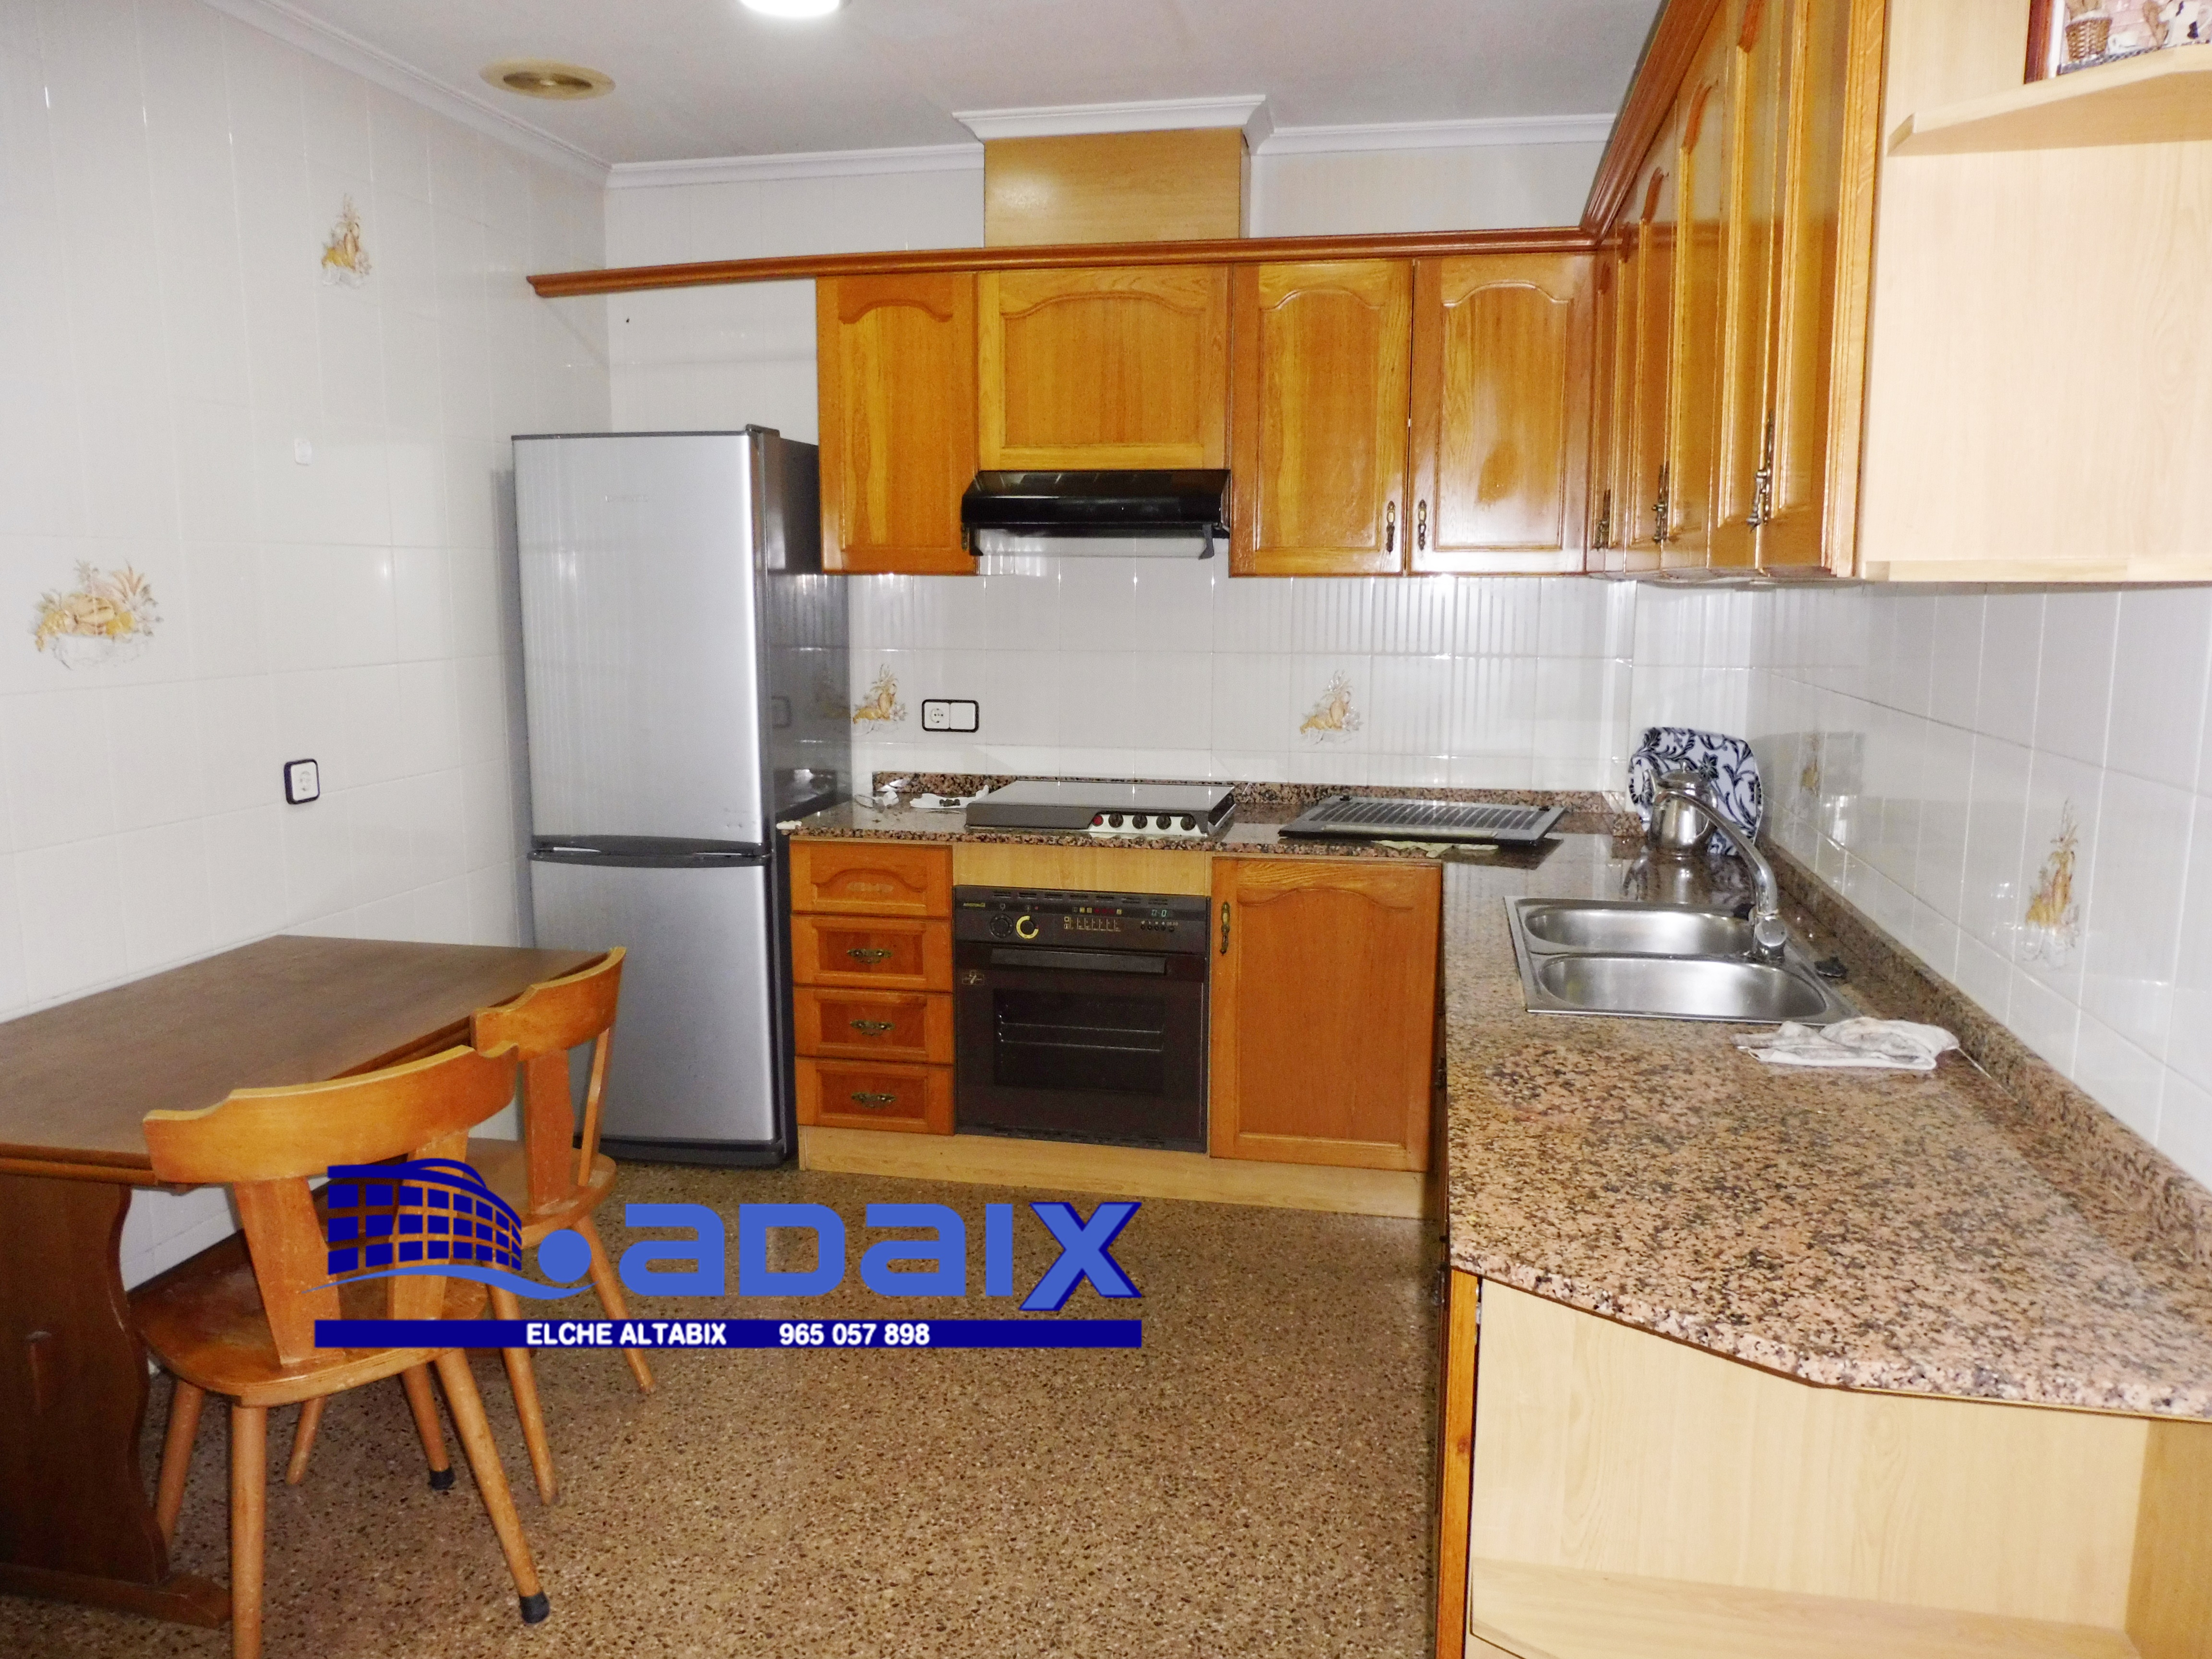 Flat in Rent in Elche